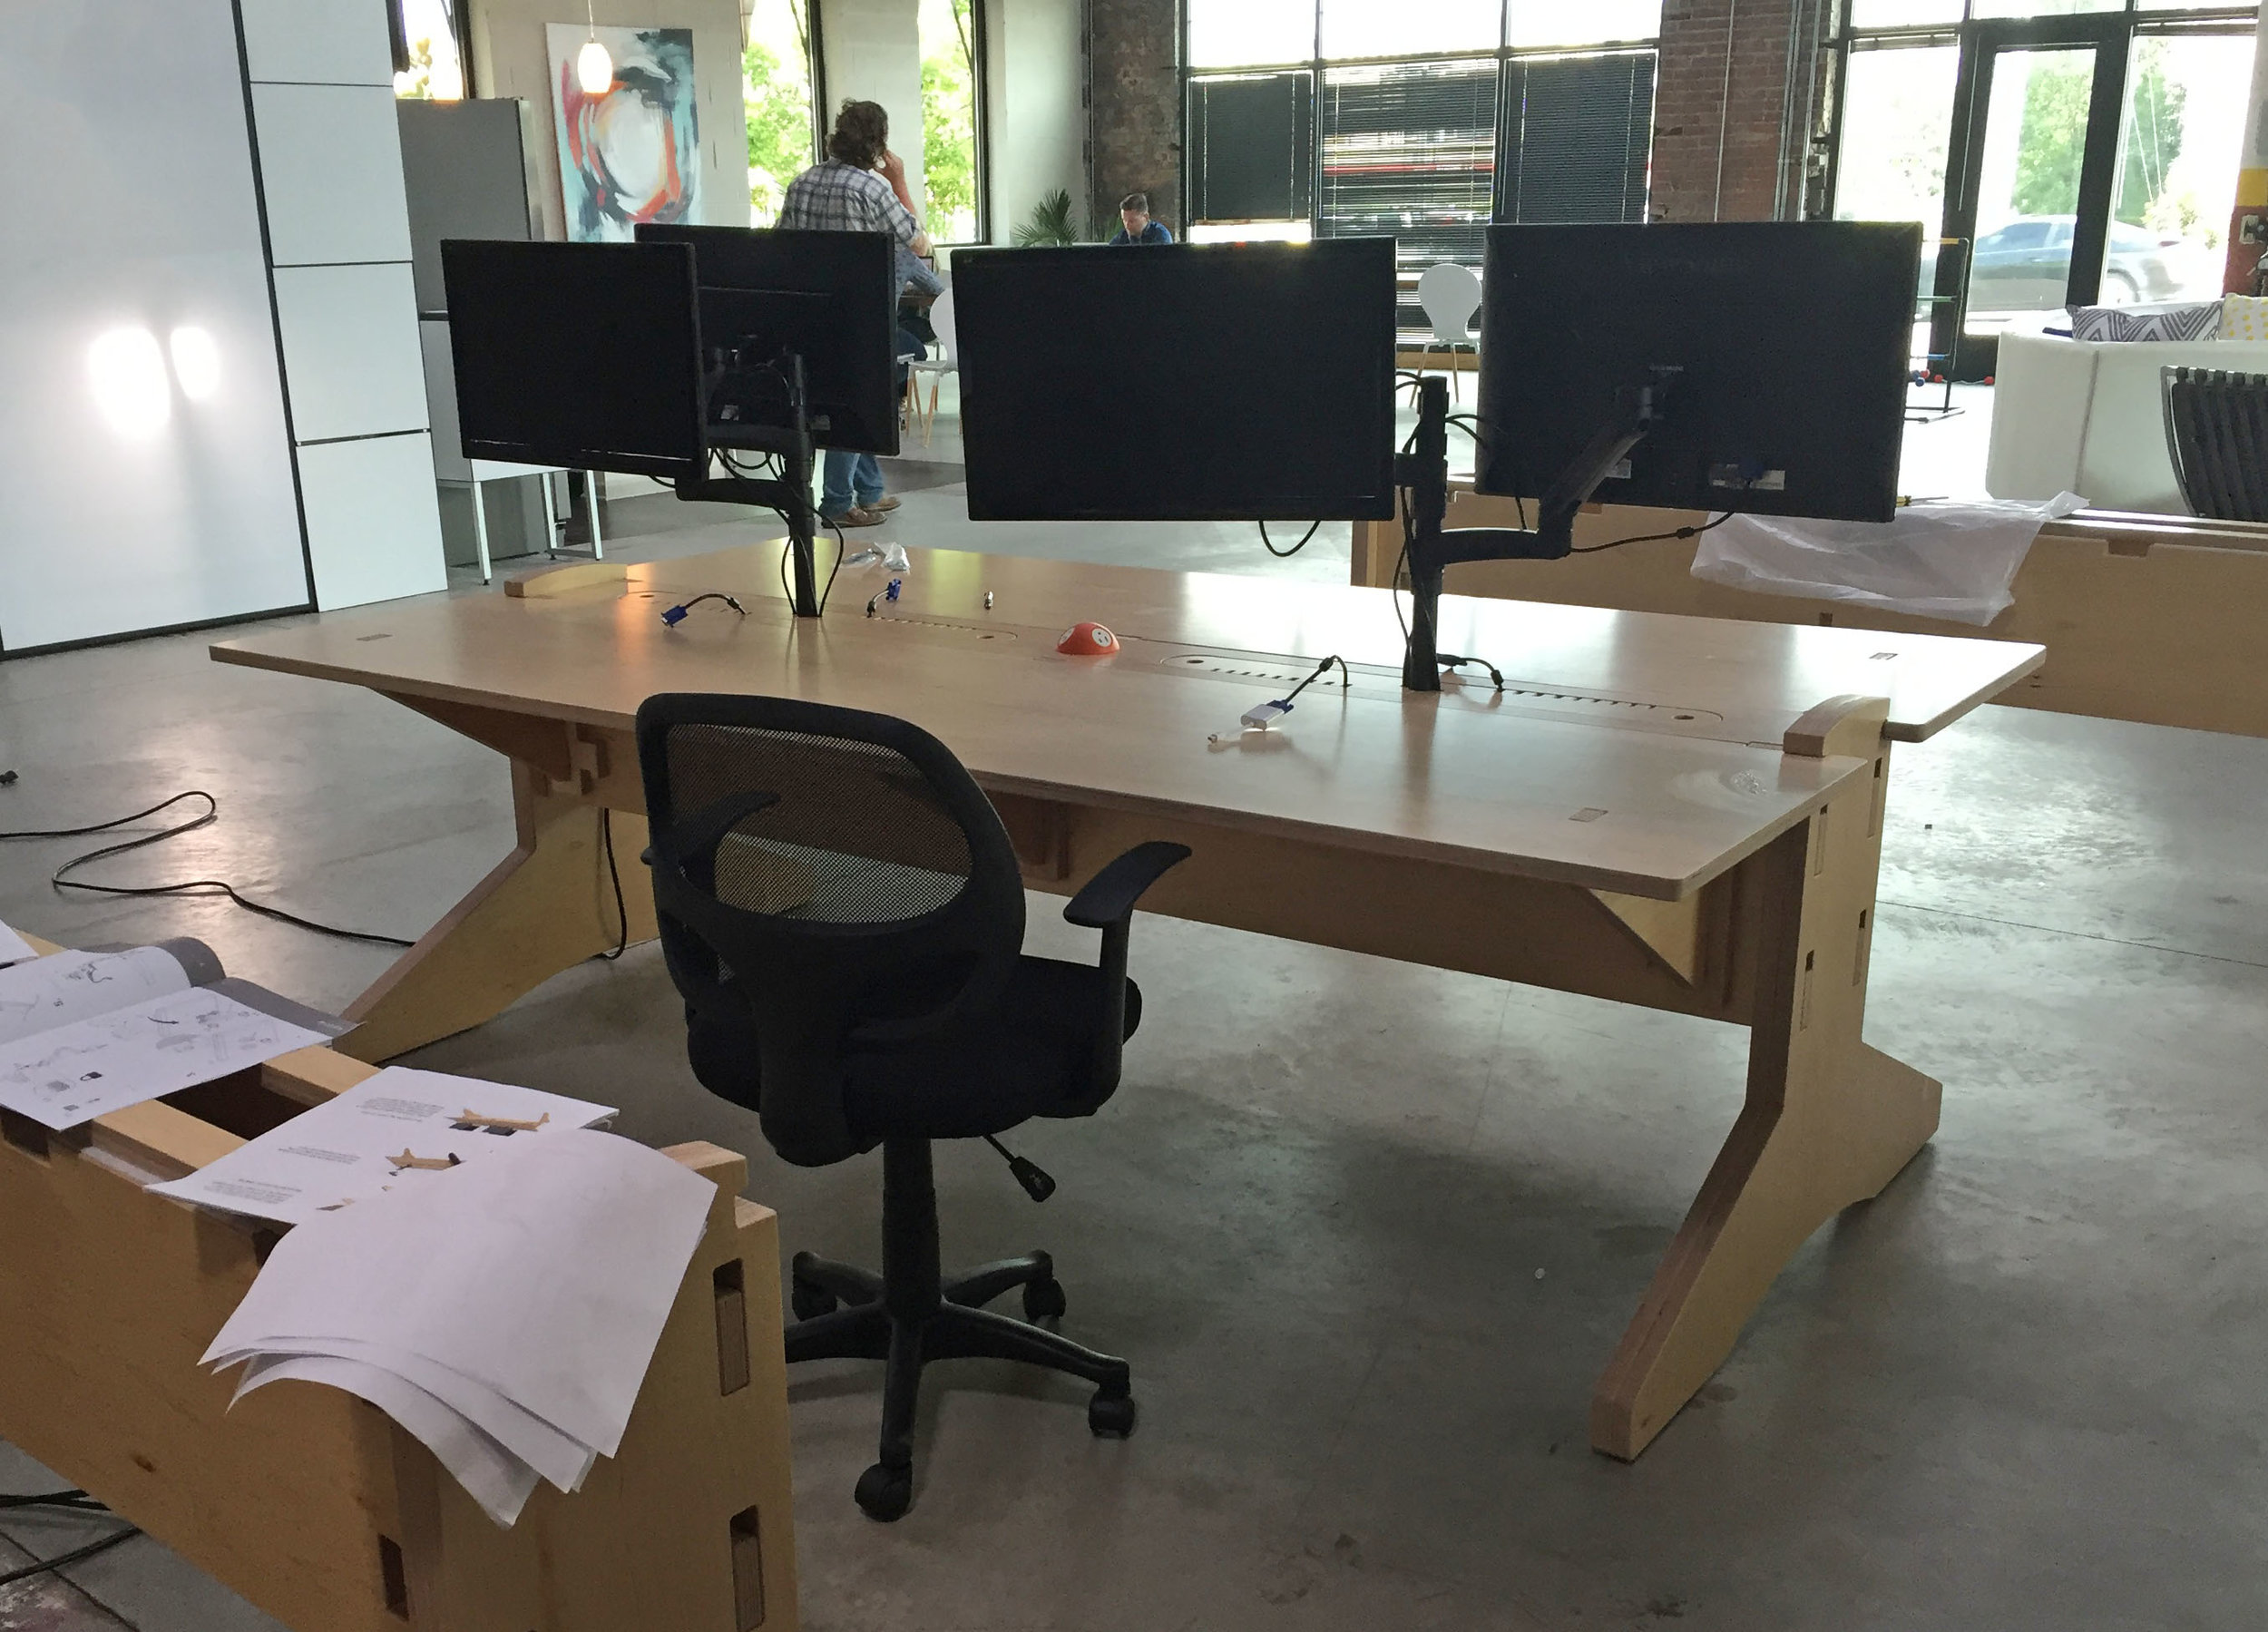 The first assembled table at the client's offices